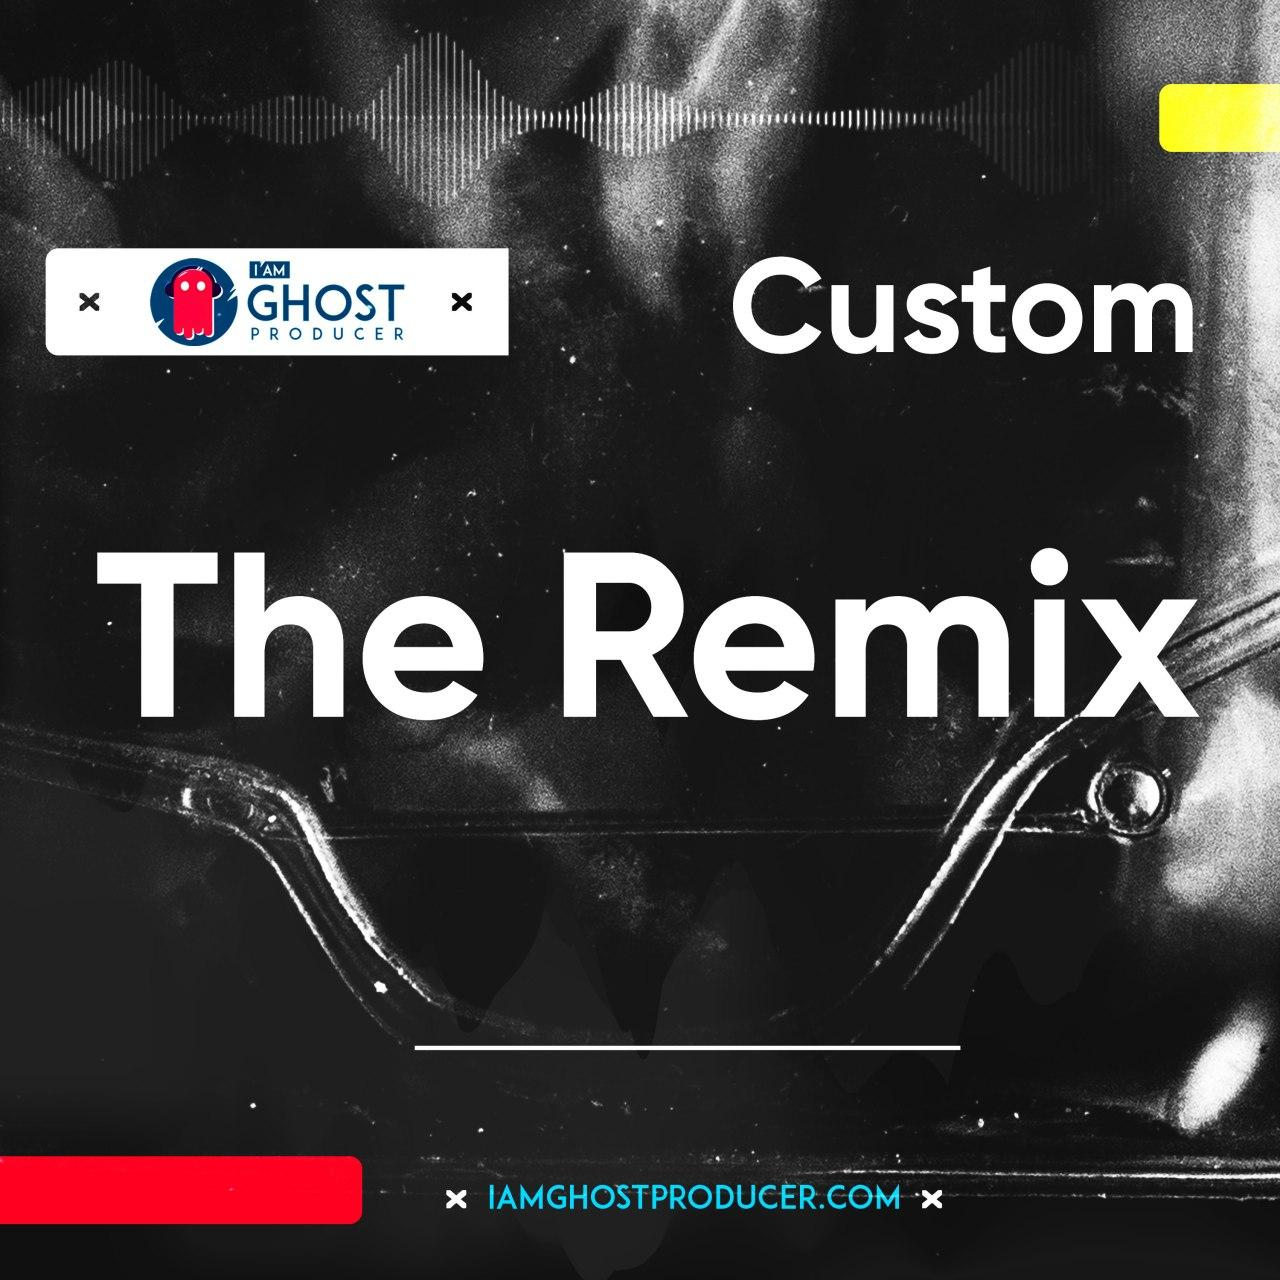 The Remix Ghost Producer